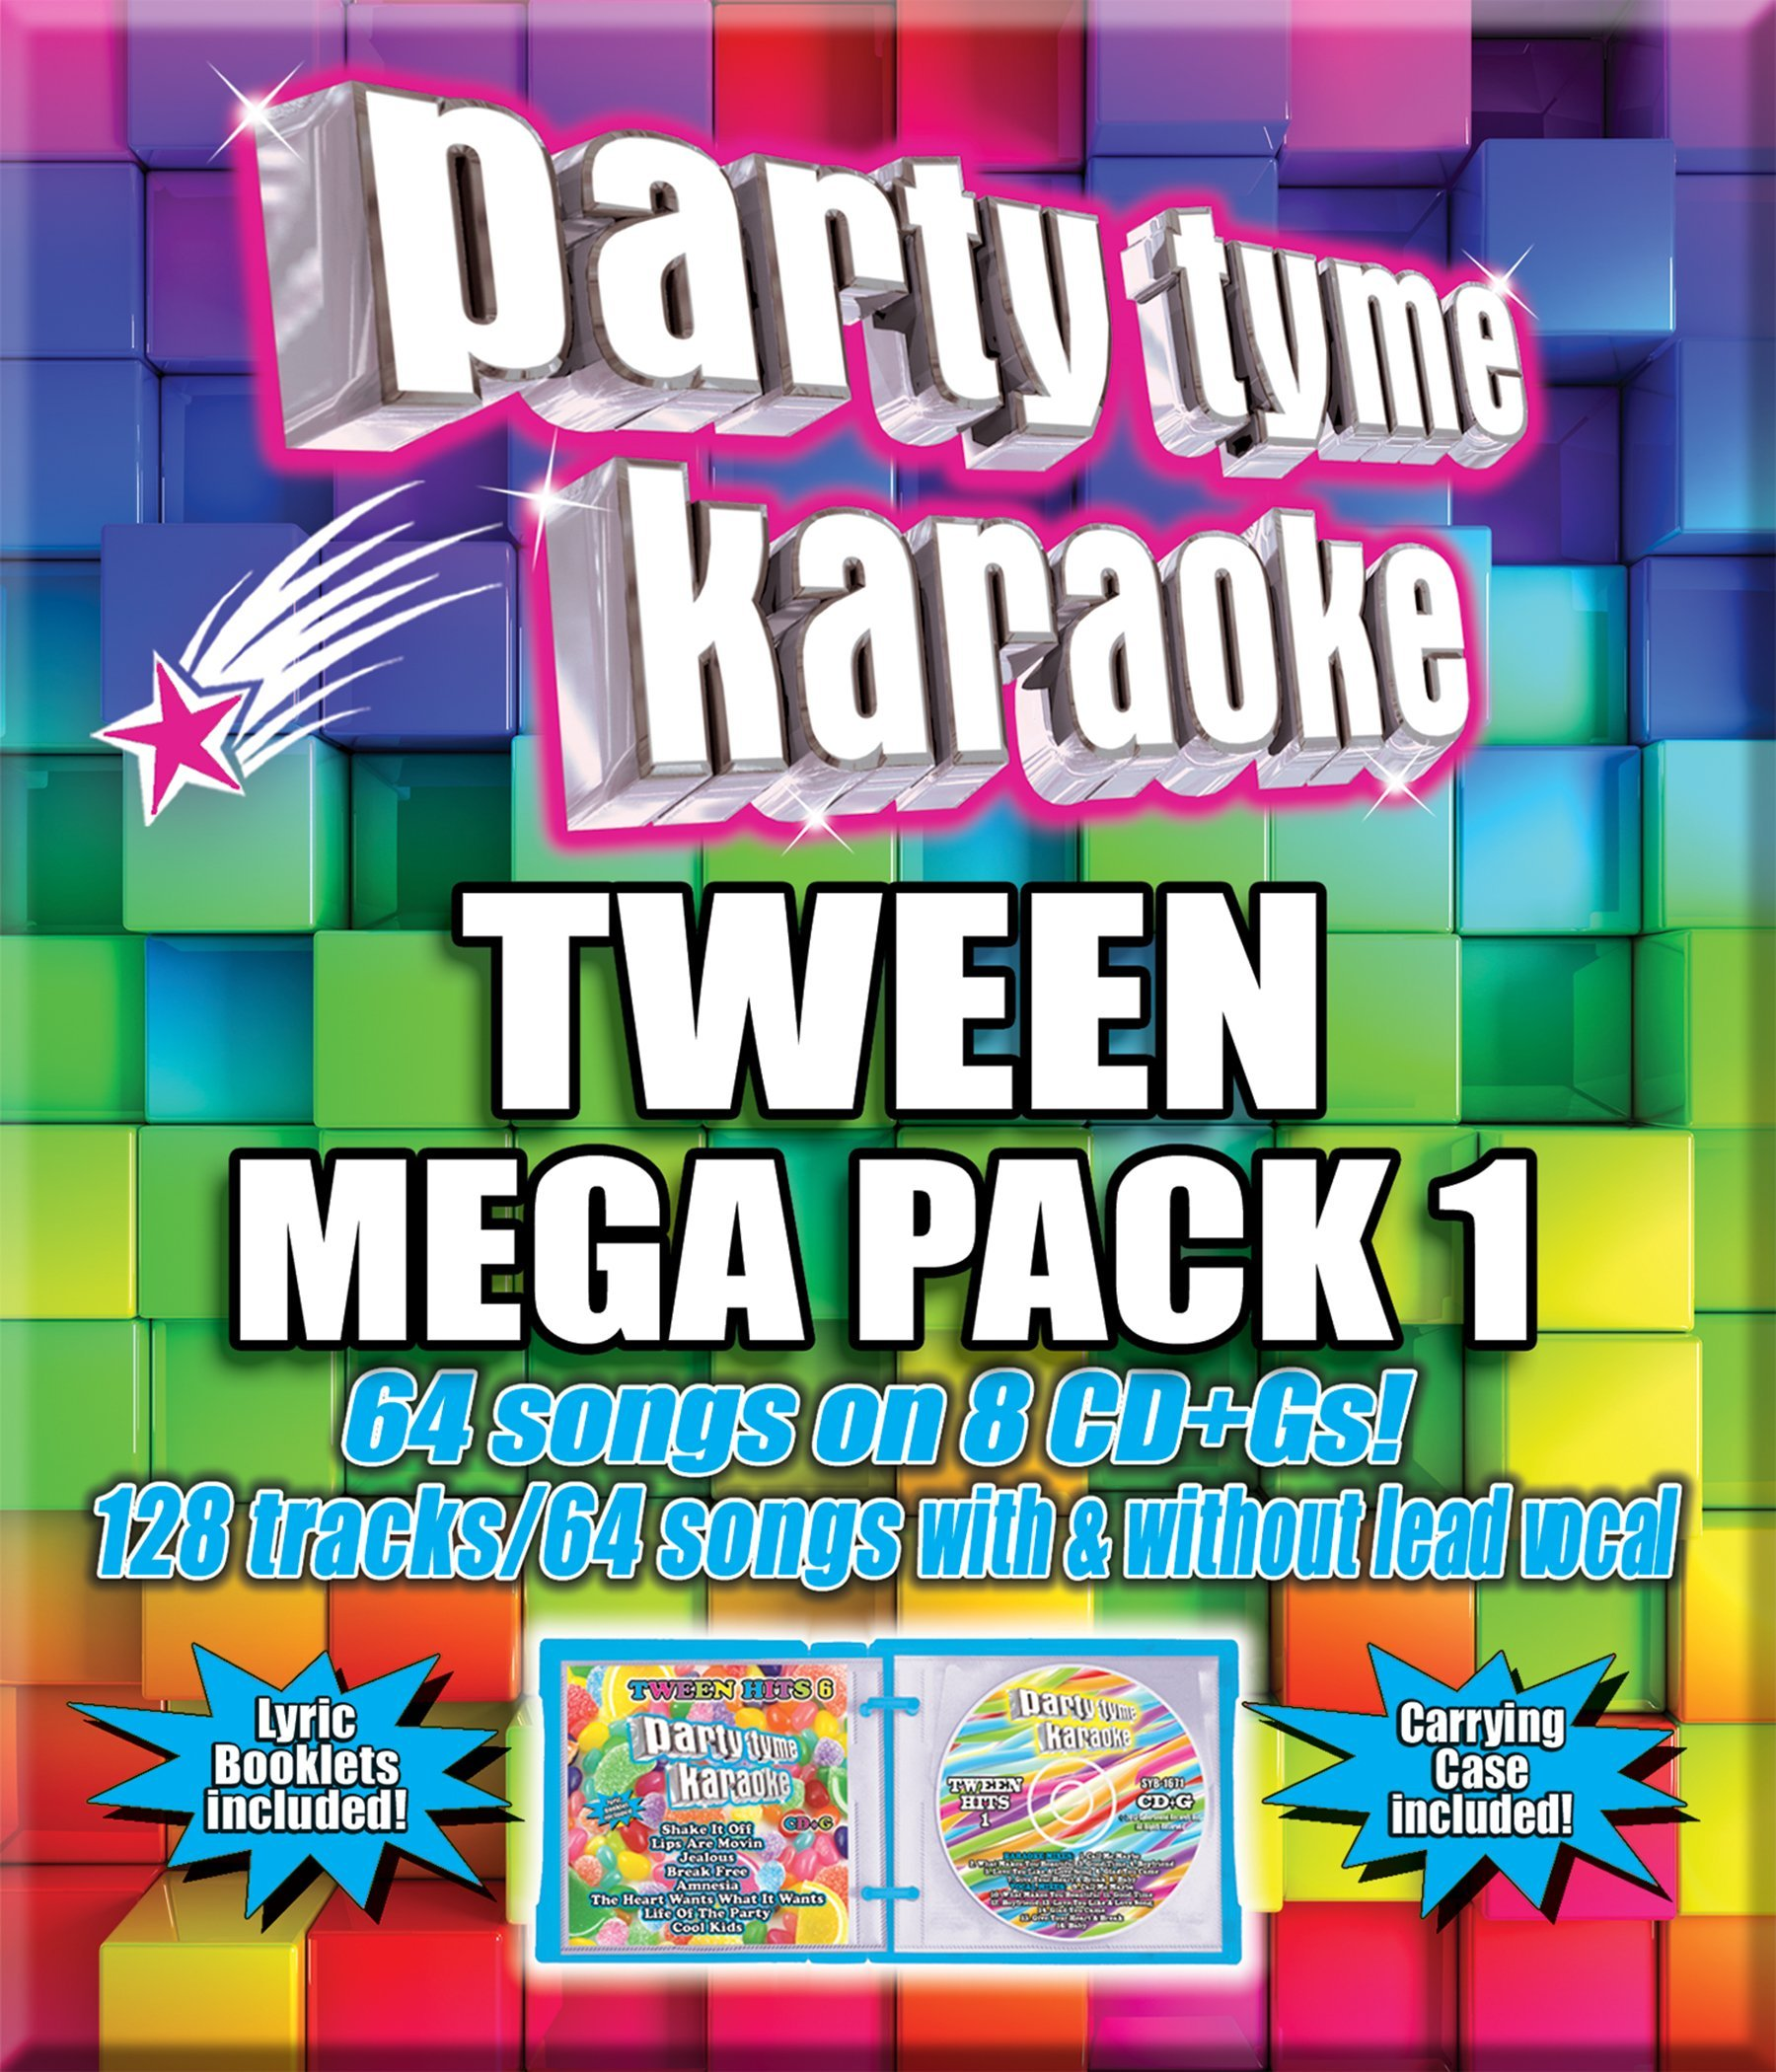 Party Tyme Karaoke - Tween Mega Pack 1 [8 CD][64+64-Song Party Pack] by Sybersound